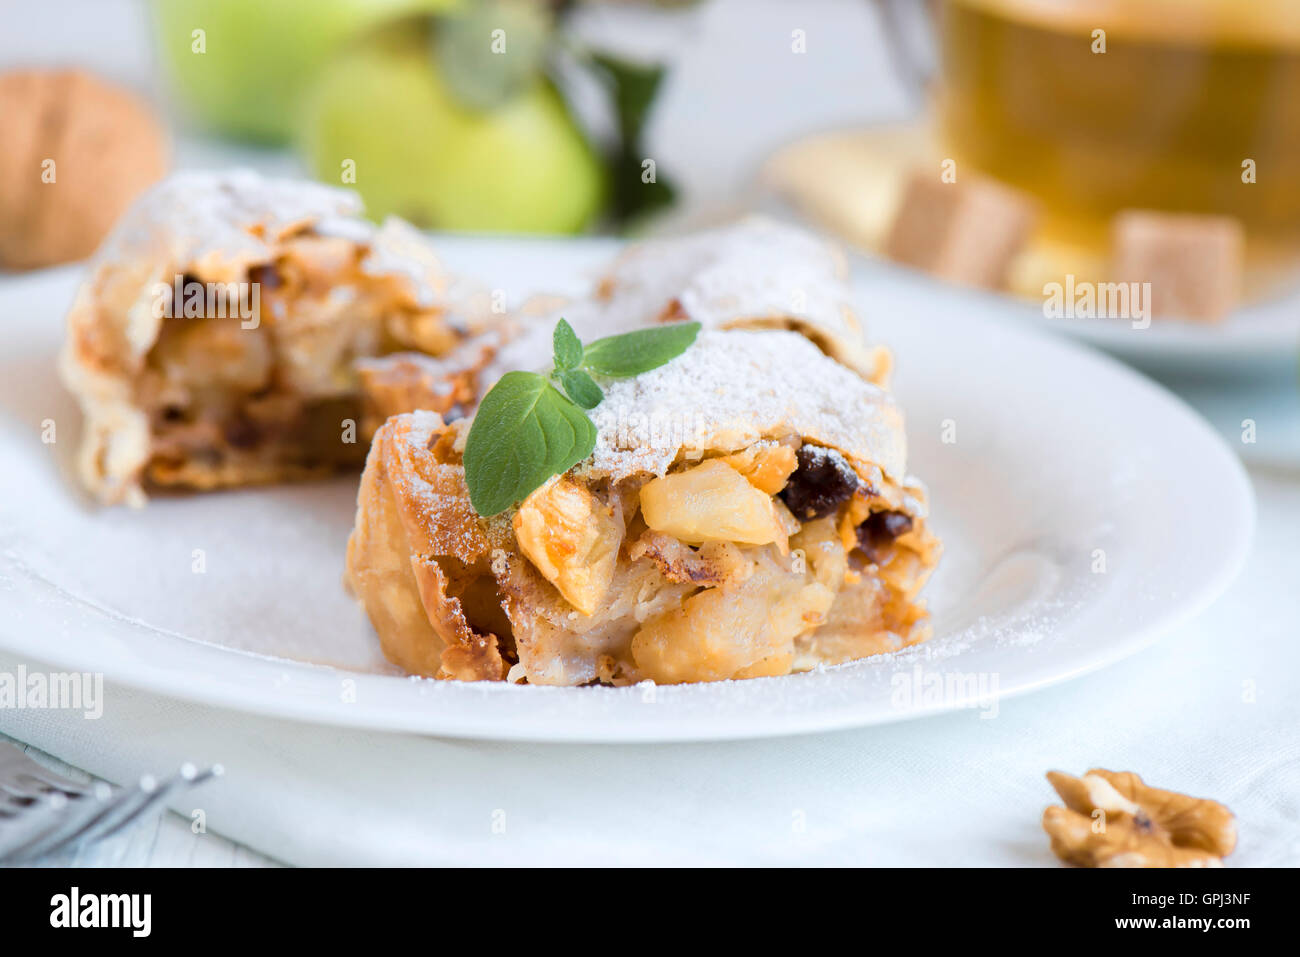 Homemade apple strudel with apples, raisin and walnuts, vegetarian delicious pastry - Stock Image